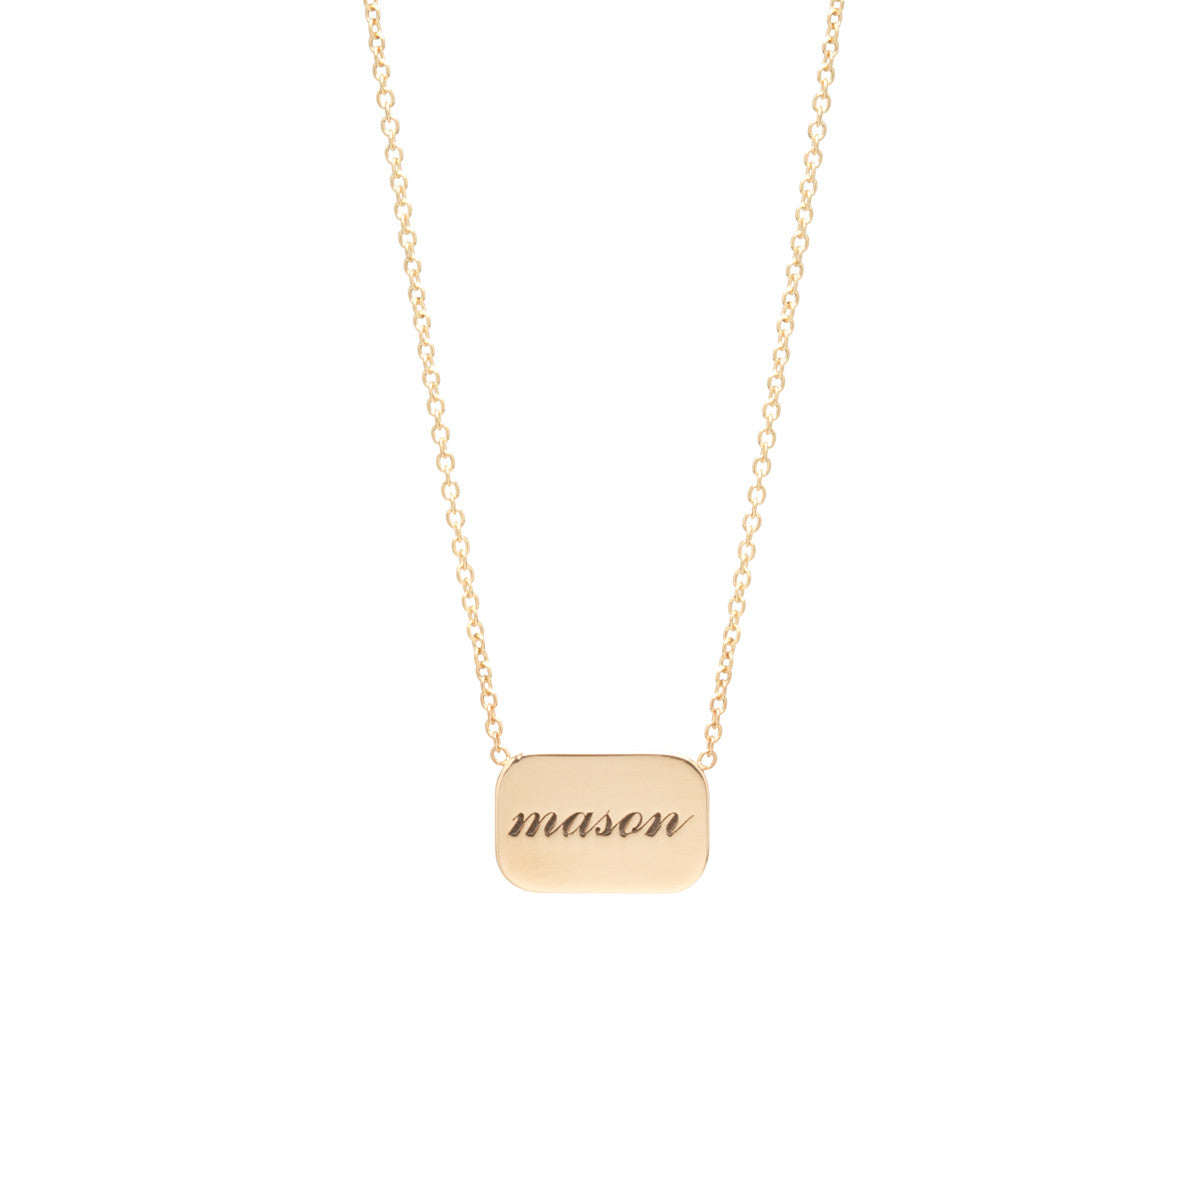 fiorelli rectangle semicircle amp rose necklace silver pav gold image